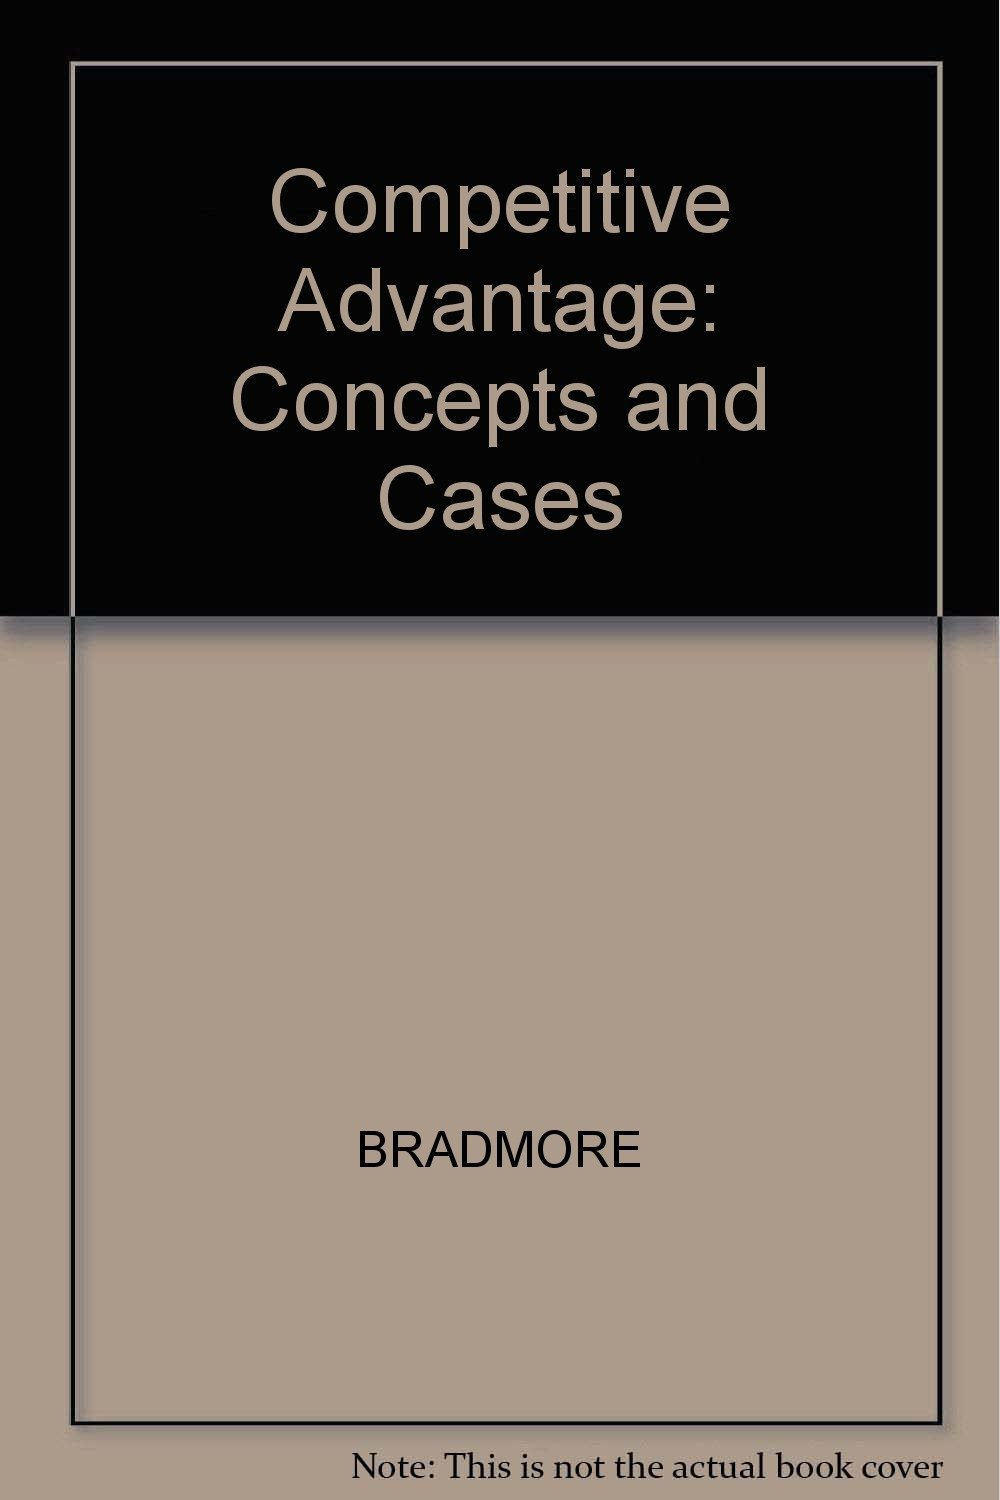 Competitive Advantage: Concepts and Cases